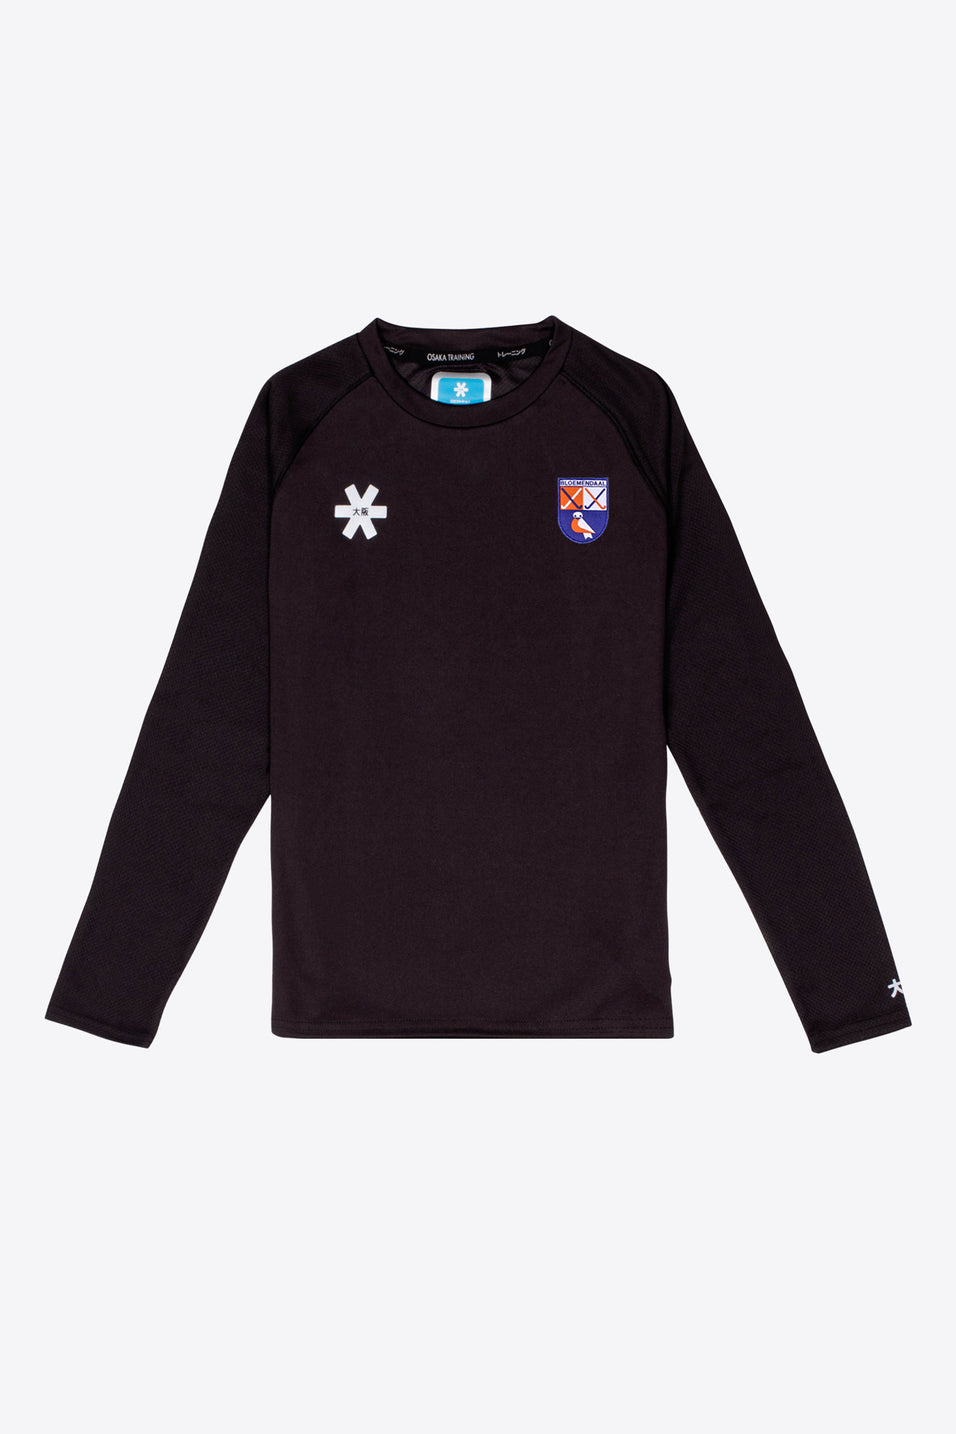 HC Bloemendaal Deshi Keeper Shirt Long Sleeve - Black